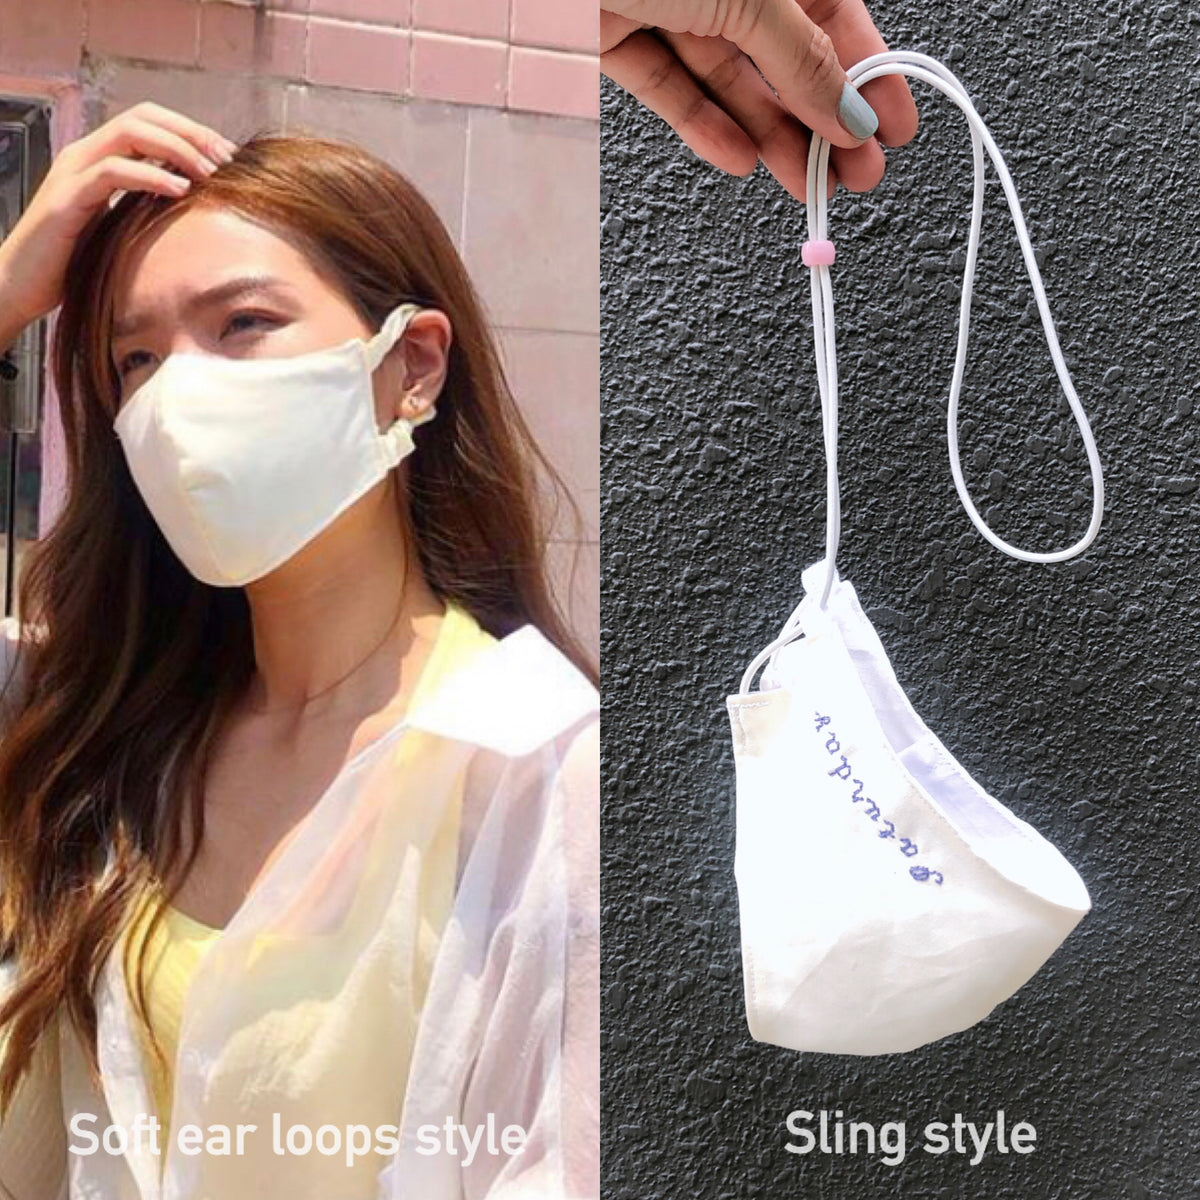 MEW Sling or Soft Elastic Ear Loops 3D Mask Without Name Embroidery - FLORAL Print (up to 15% off with code below)